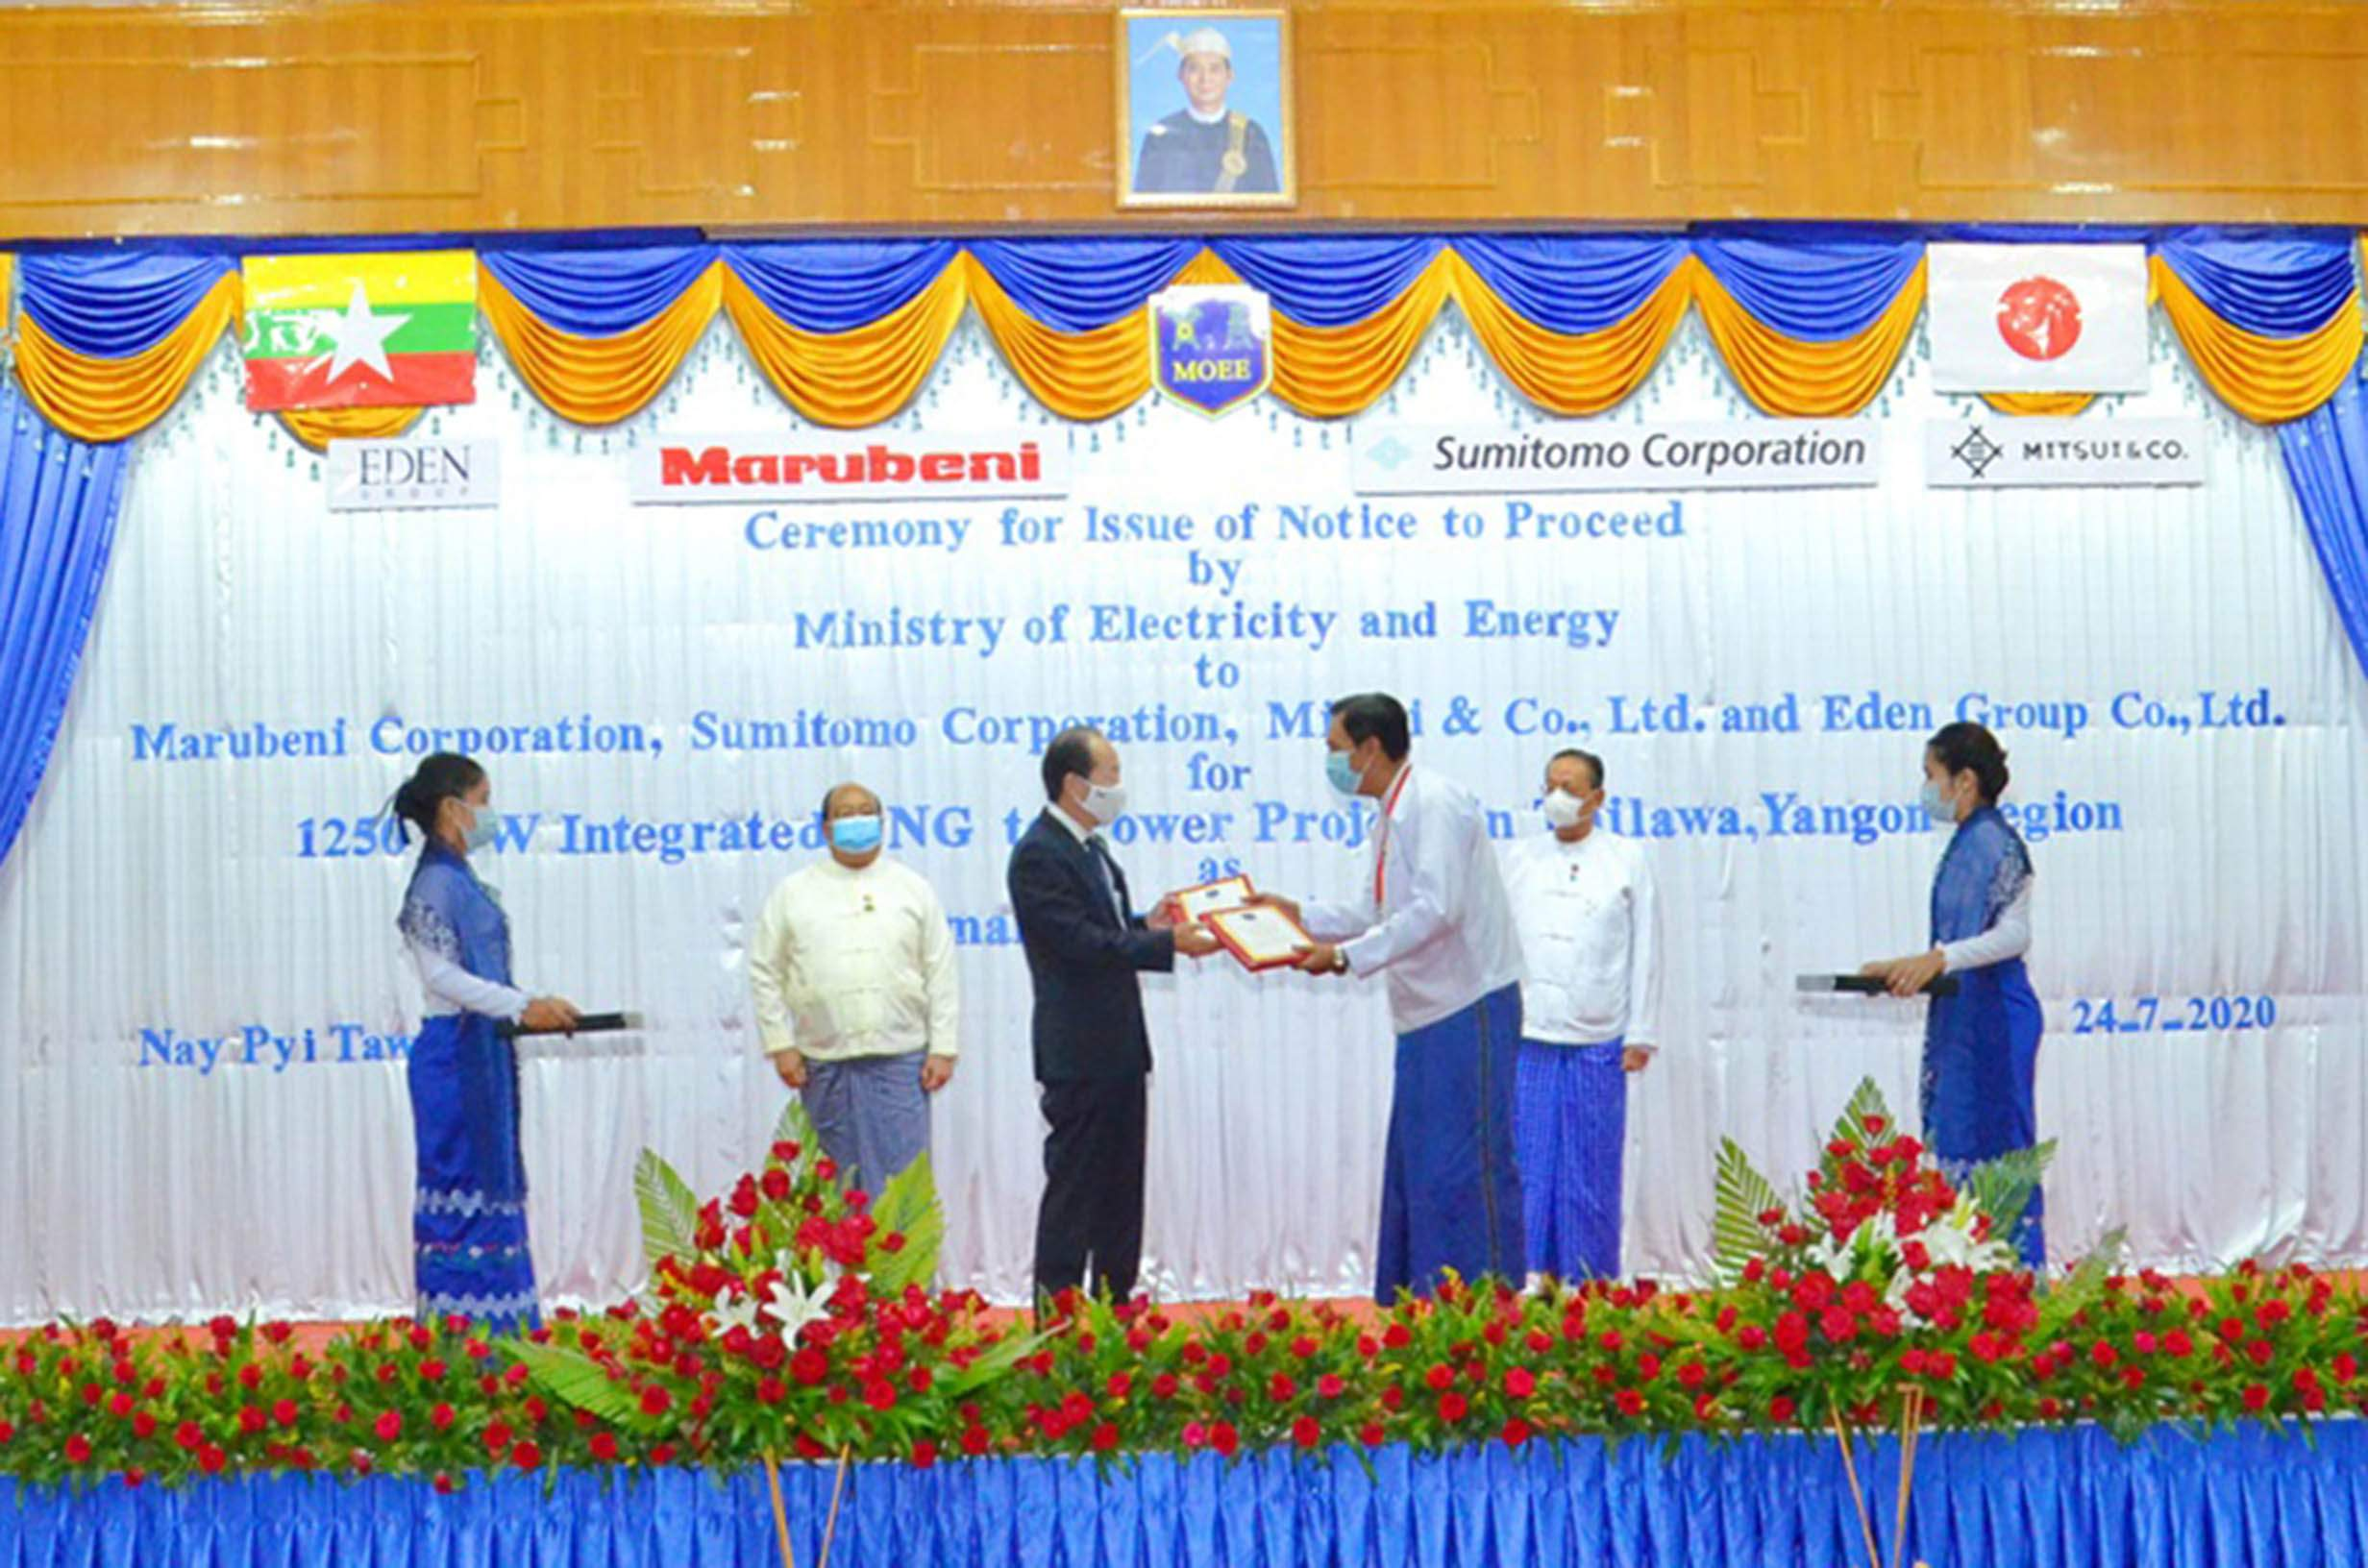 Japanese Ambassador Mr Ichiro Maruyamar (centre left) and MoEE's Deputy Minister Dr Tun Naing (centre right) exchange documents on electricity supply project from LNG during a ceremony in Nay Pyi Taw on 24 July 2020.Photo: MNA